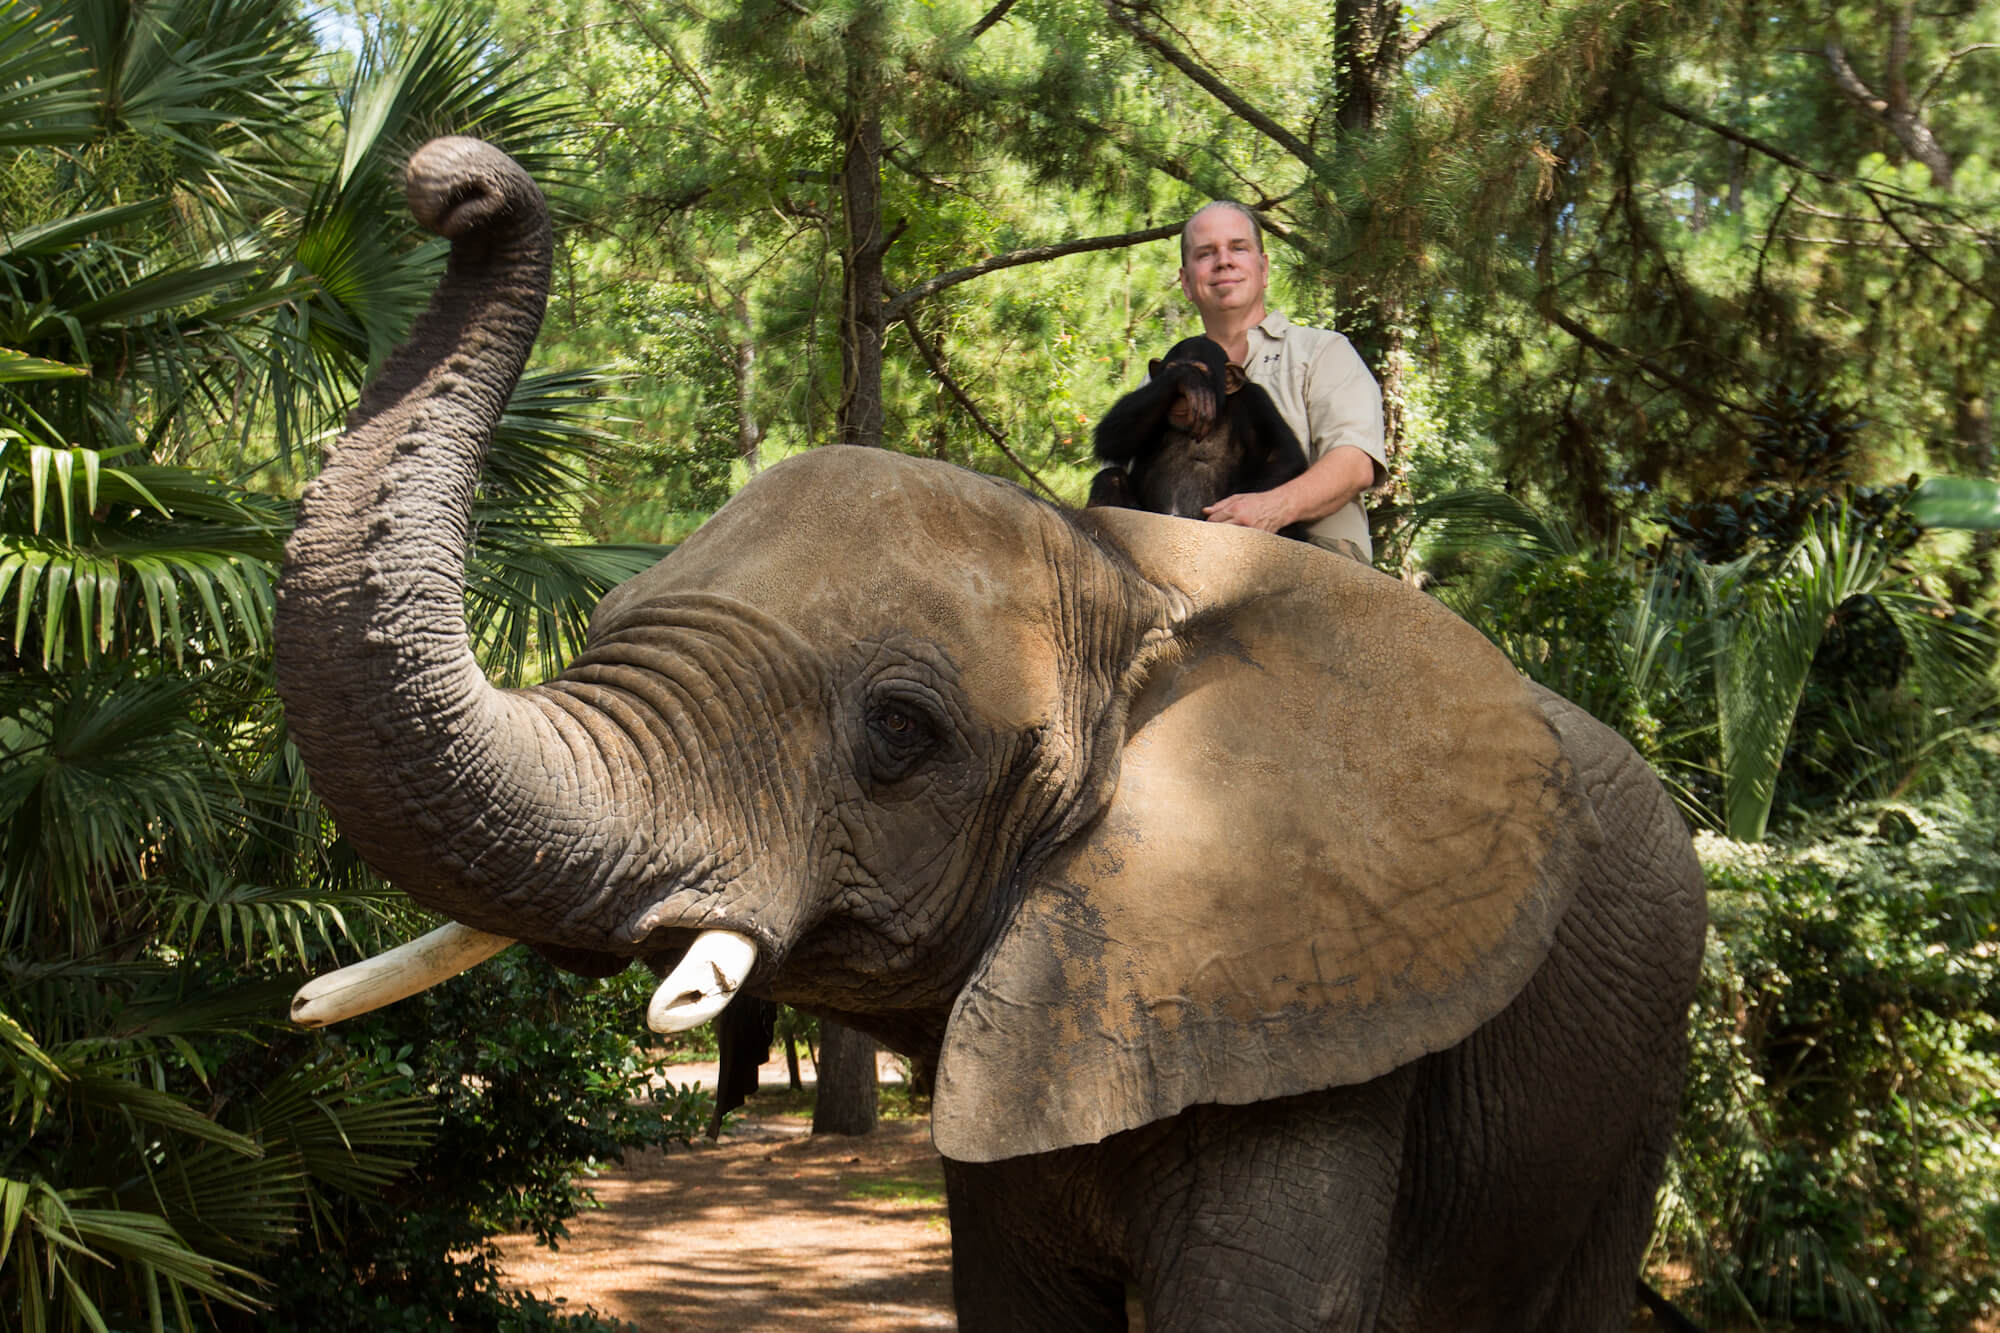 elephant torture and abuse